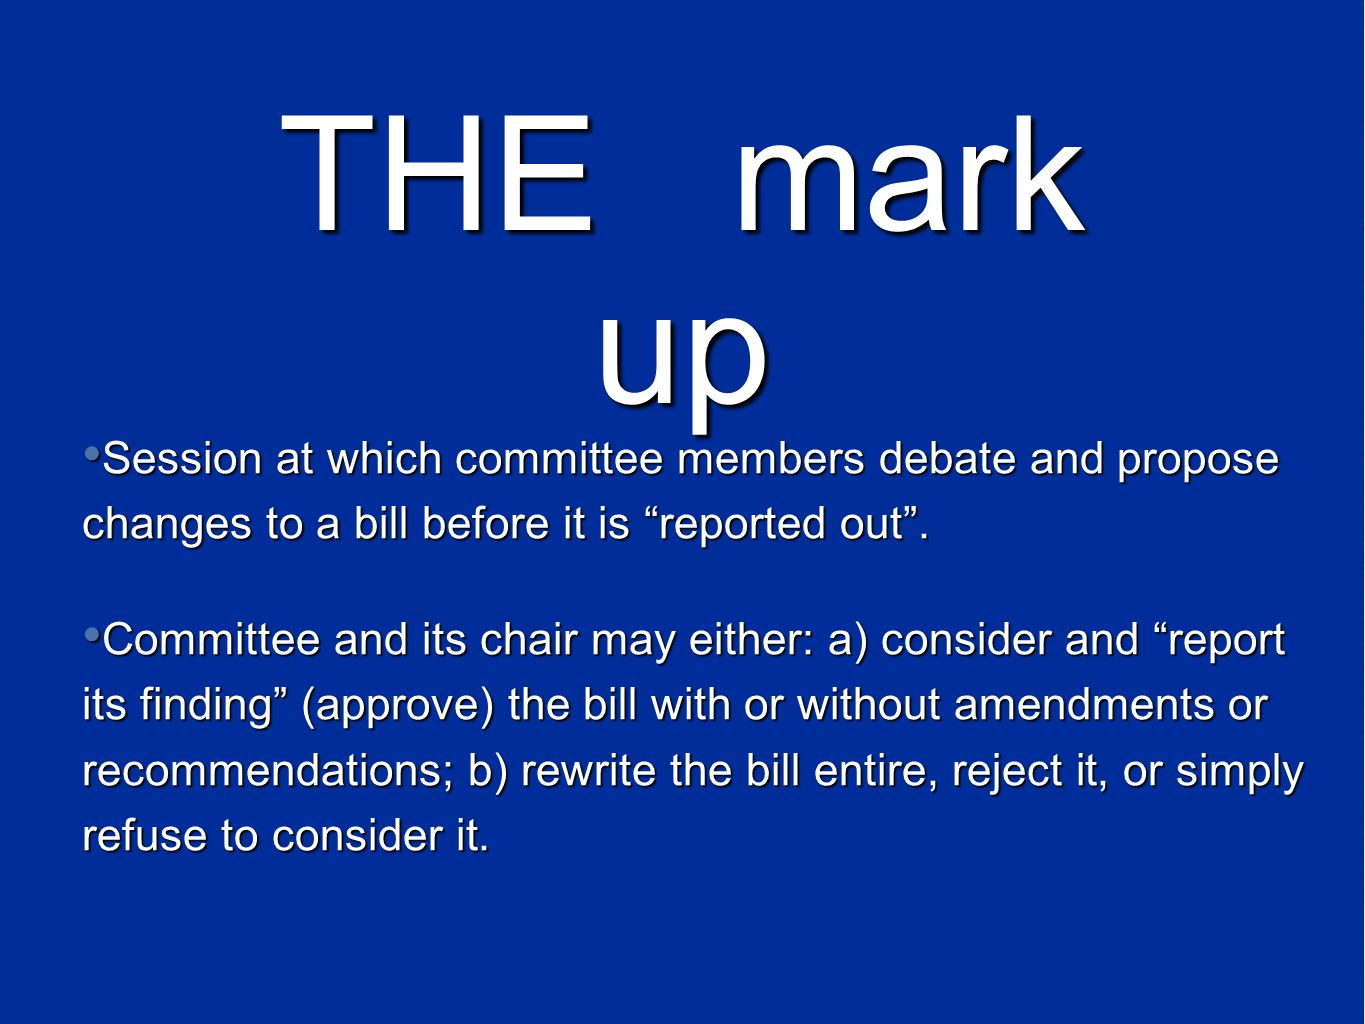 Session at which committee members debate and propose changes to a bill before it is reported out. Committee and its chair may either: a) consider and